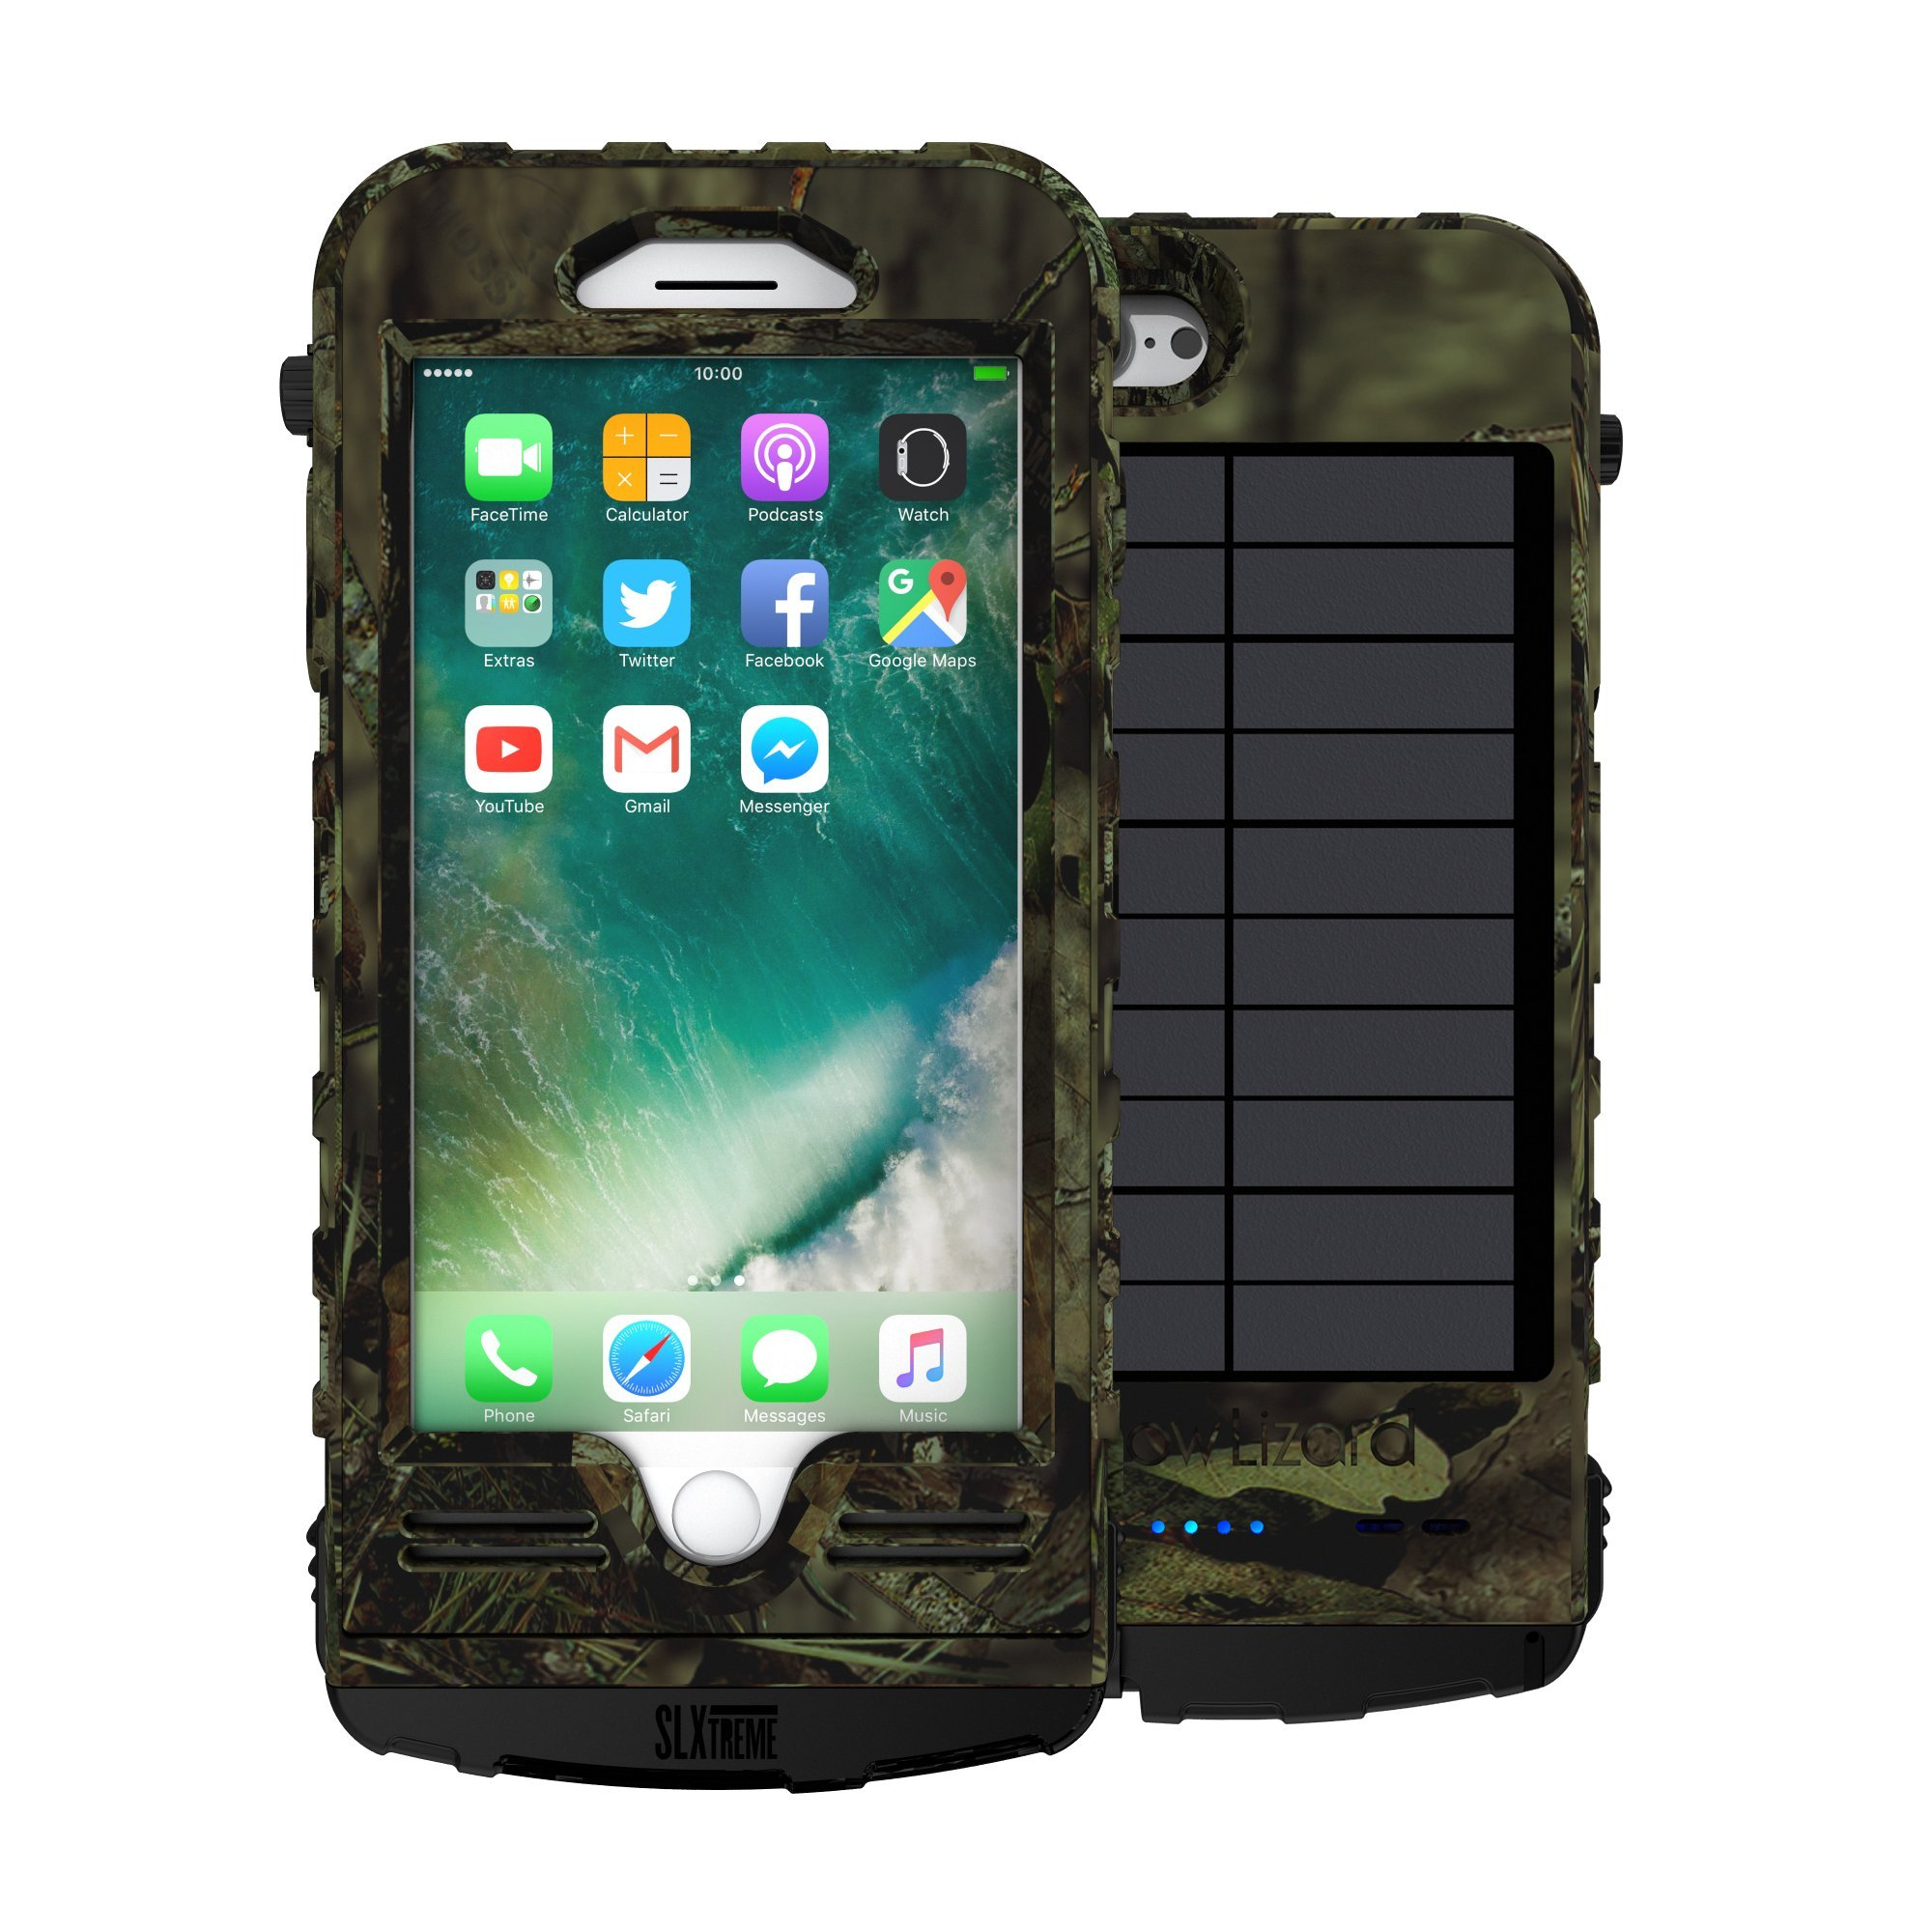 Snow Lizard Products SLXTREME iPhone 8 Plus Case - Mossy Oak Camo by Snow Lizard Products